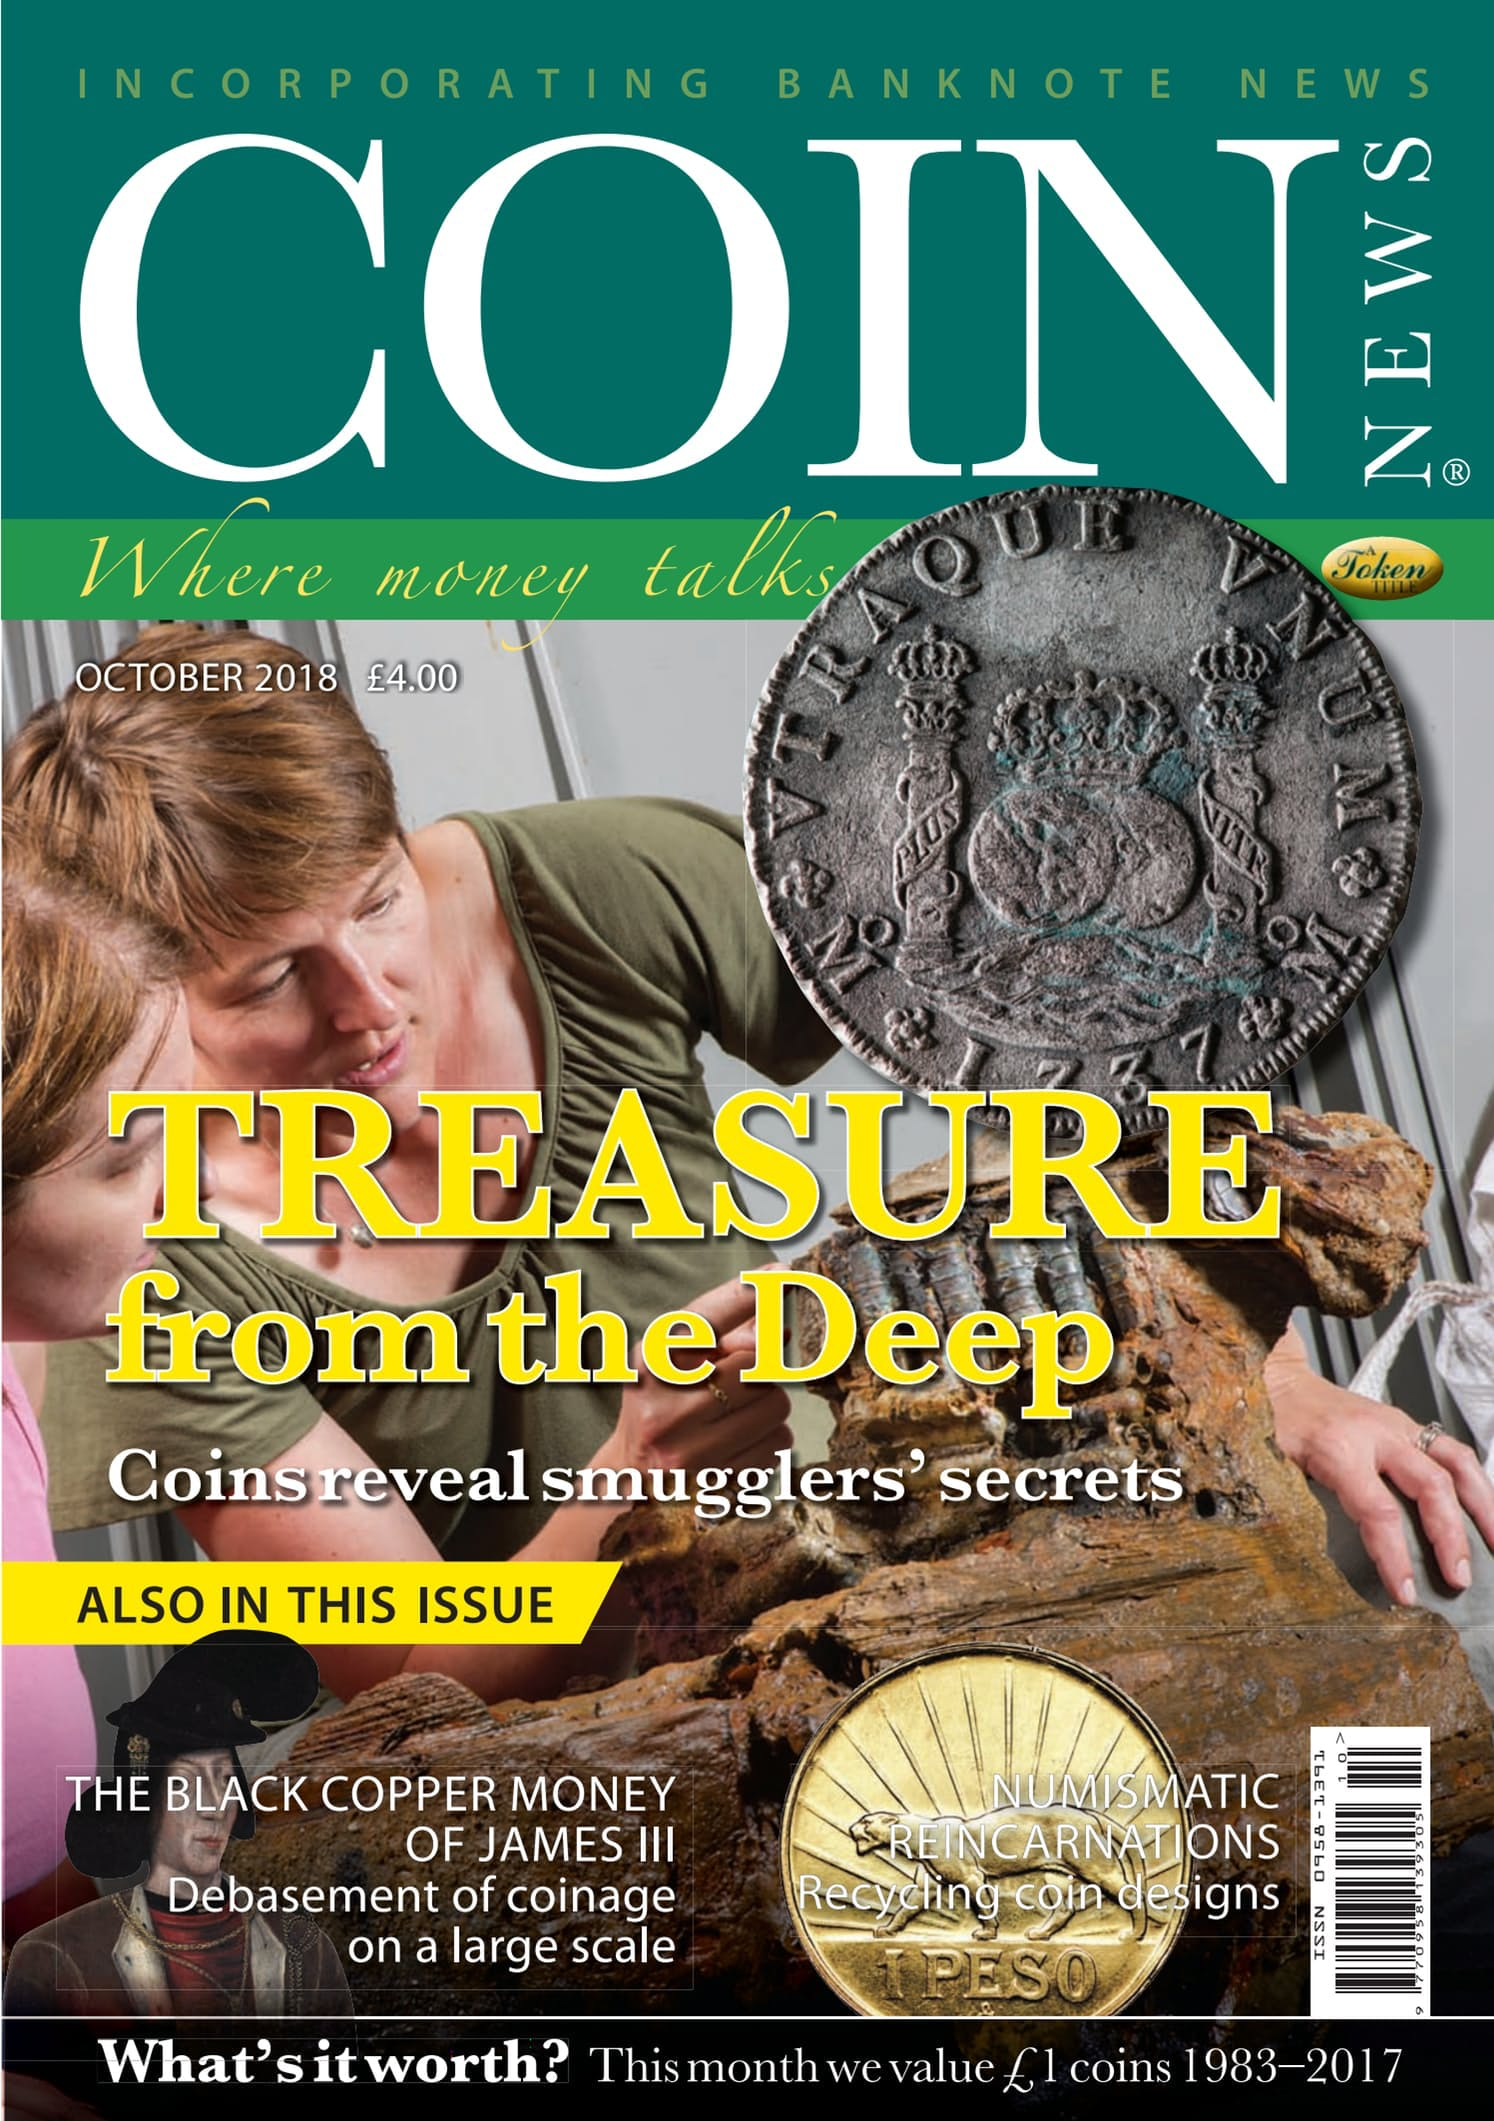 Front cover of 'Treasure from the deep', Coin News October 2018, Volume 55, Number 10 by Token Publishing